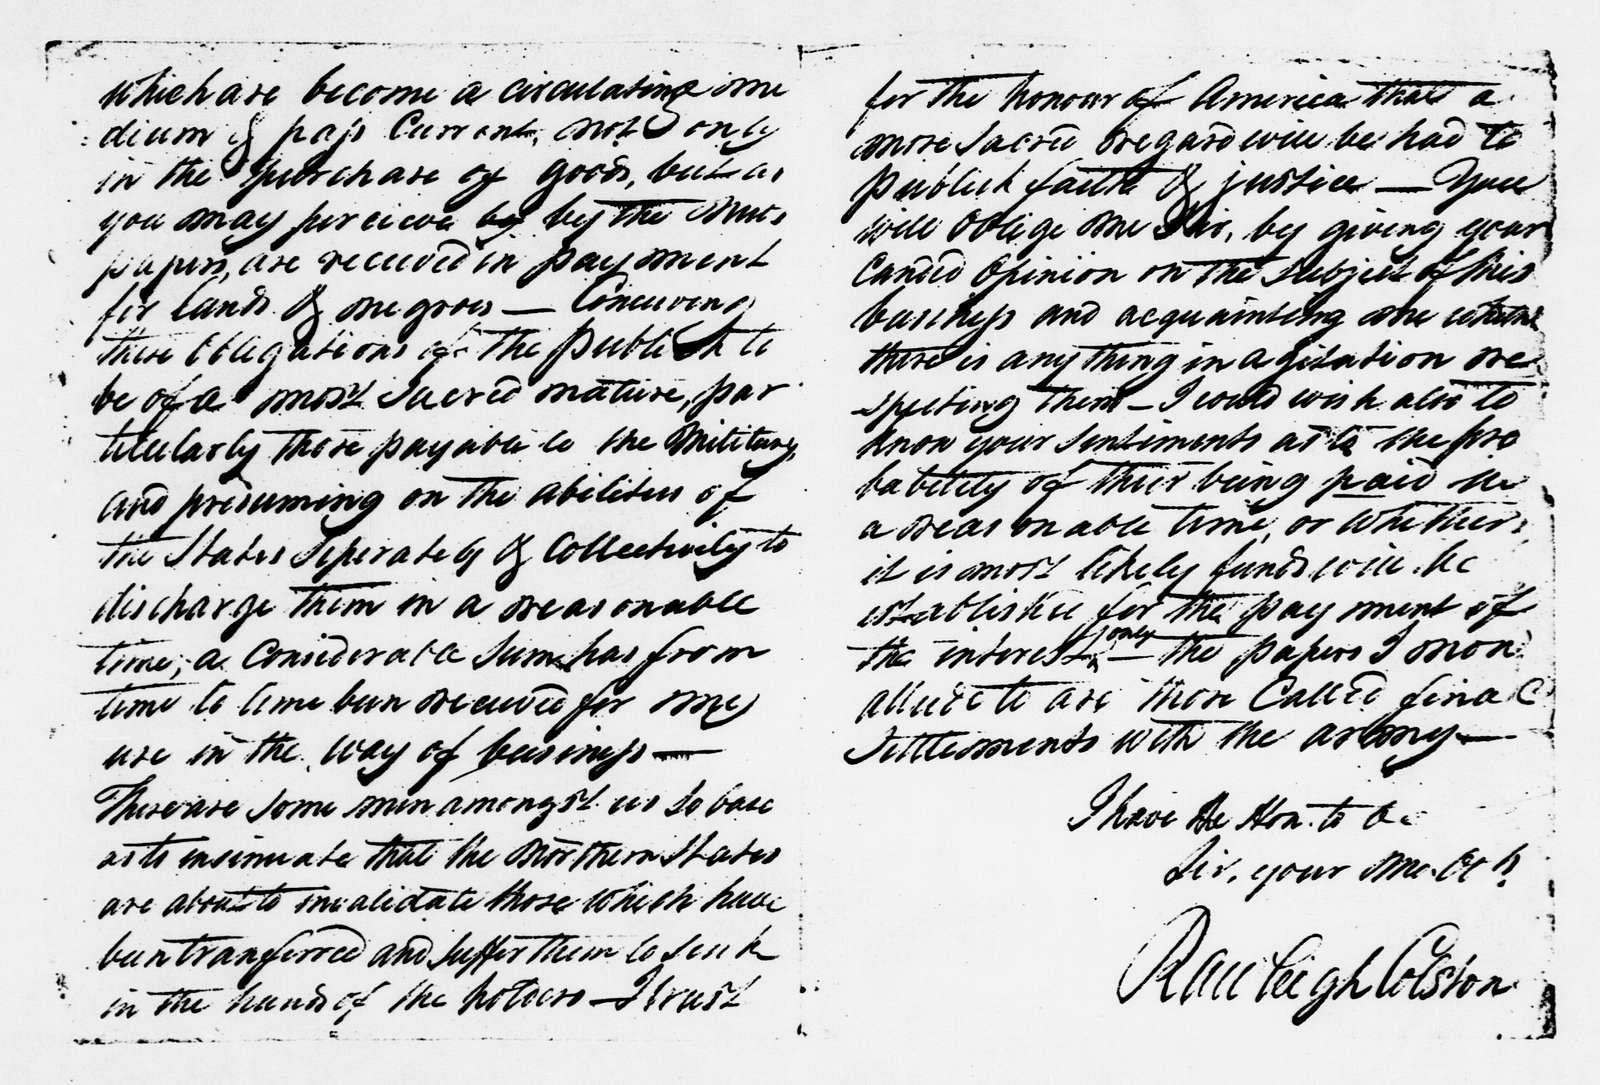 James Monroe Papers: Series 2, Additional Correspondence, 1776-1838; 1776 July 10-1792 Sept. 30 (Reel 9)